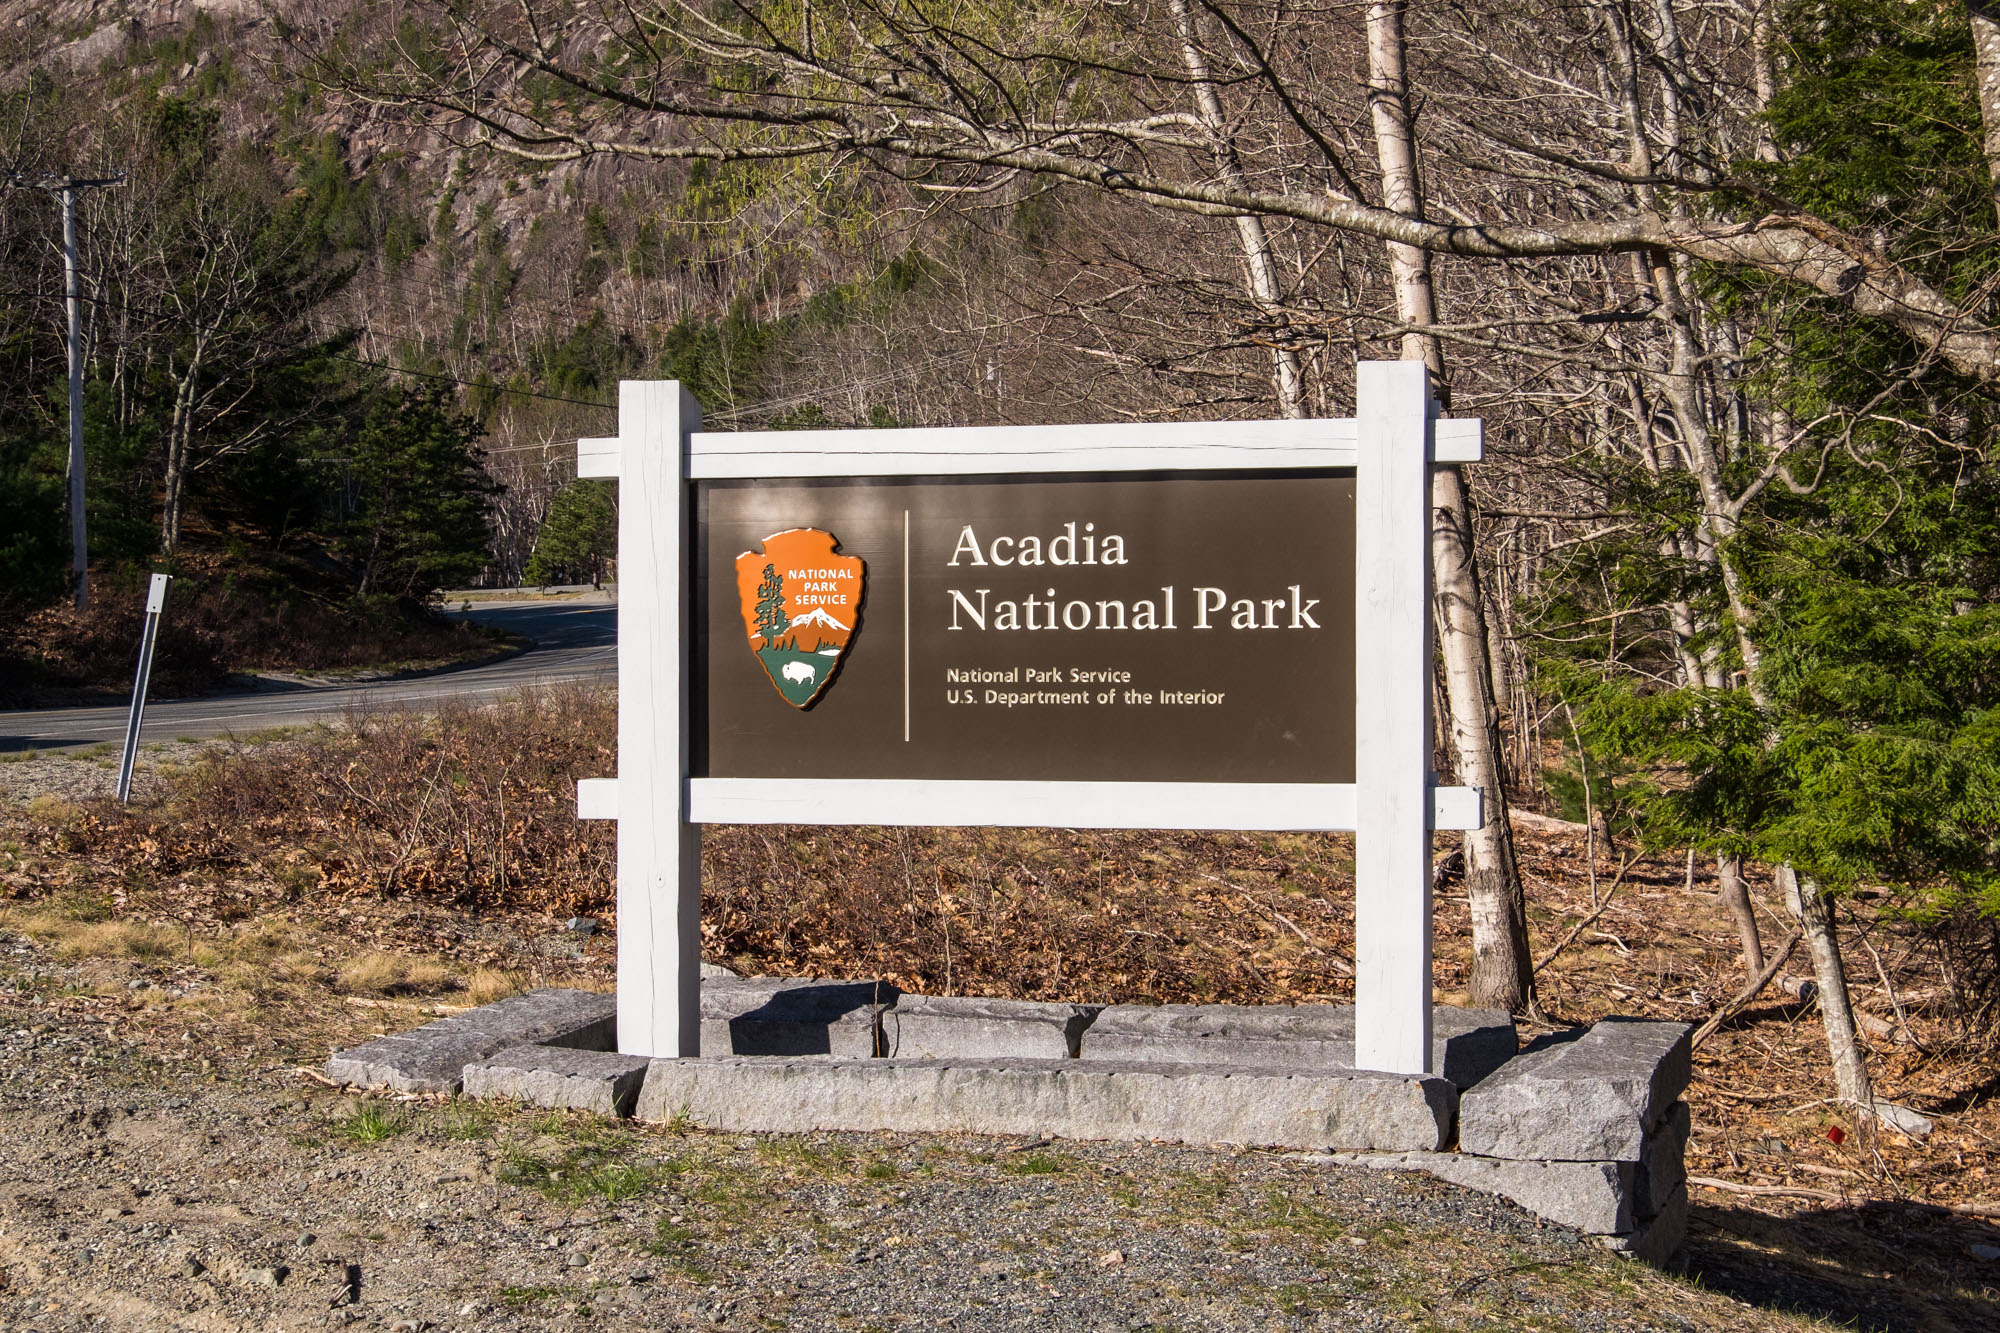 Acadia National Park! We were so happy to arrive here. We've been to Acadia before, and absolutely LOVE this park.